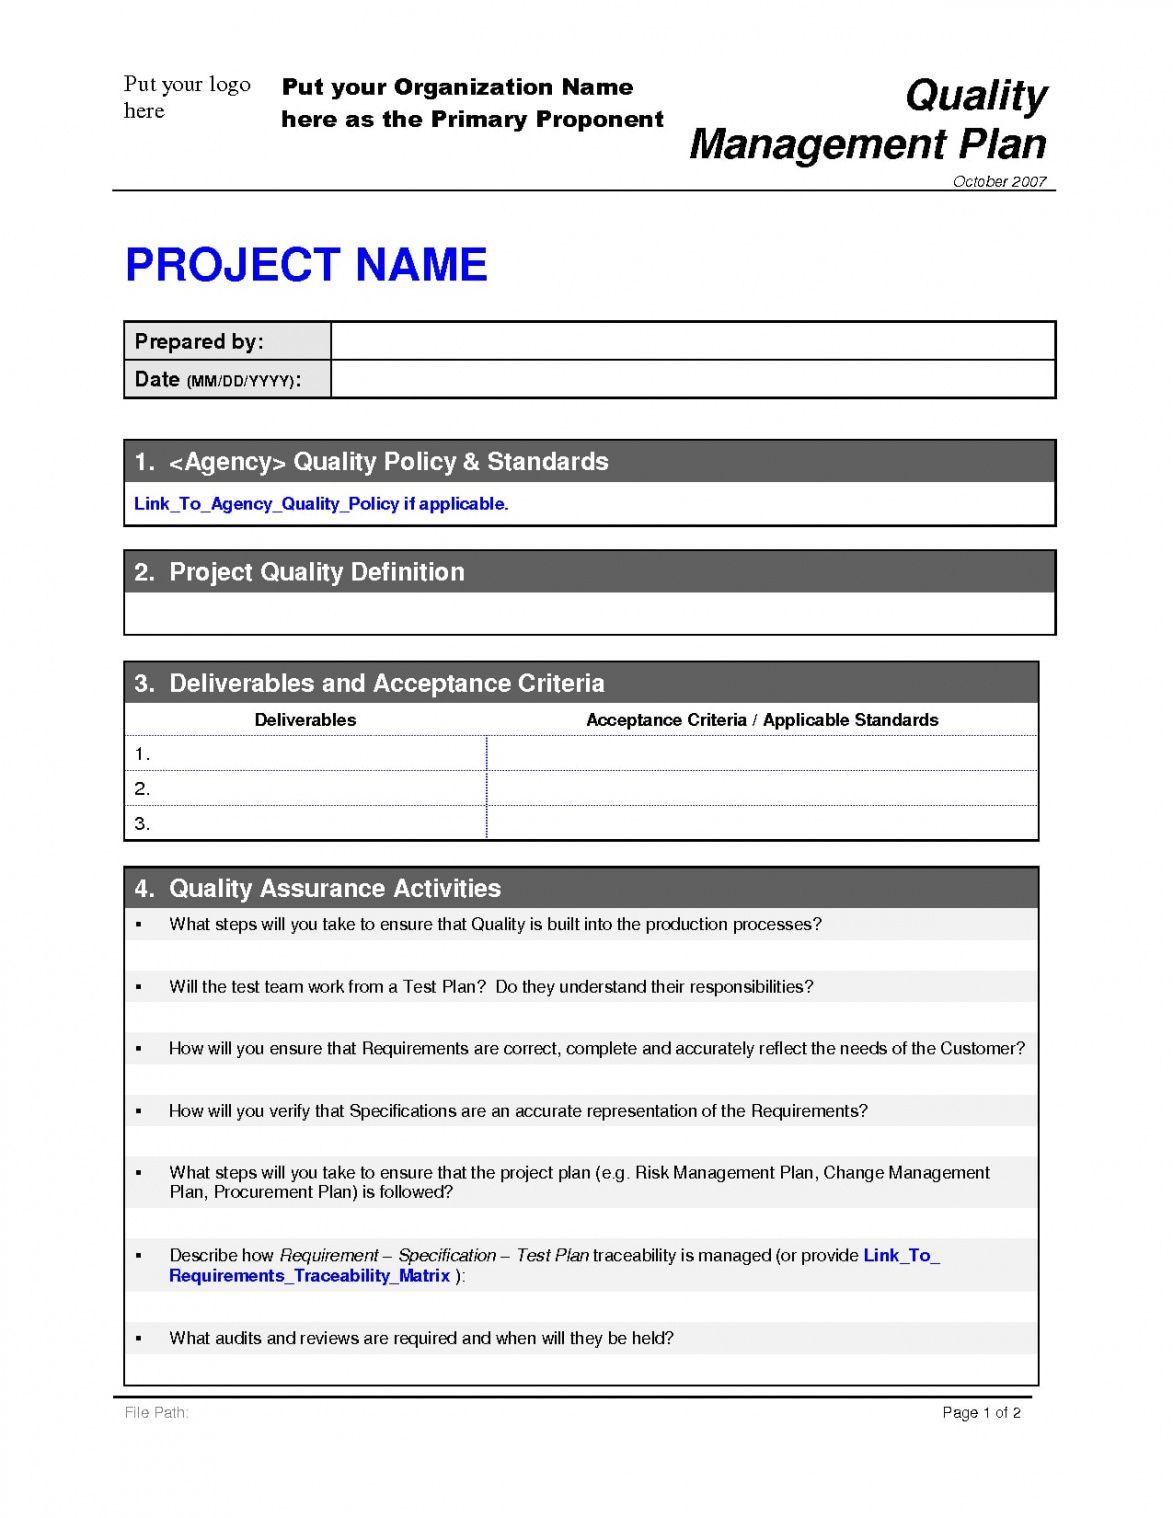 Get Our Example Of Data Management Plan Template For Free Small Business Plan Template Quality Management Business Plan Template Free